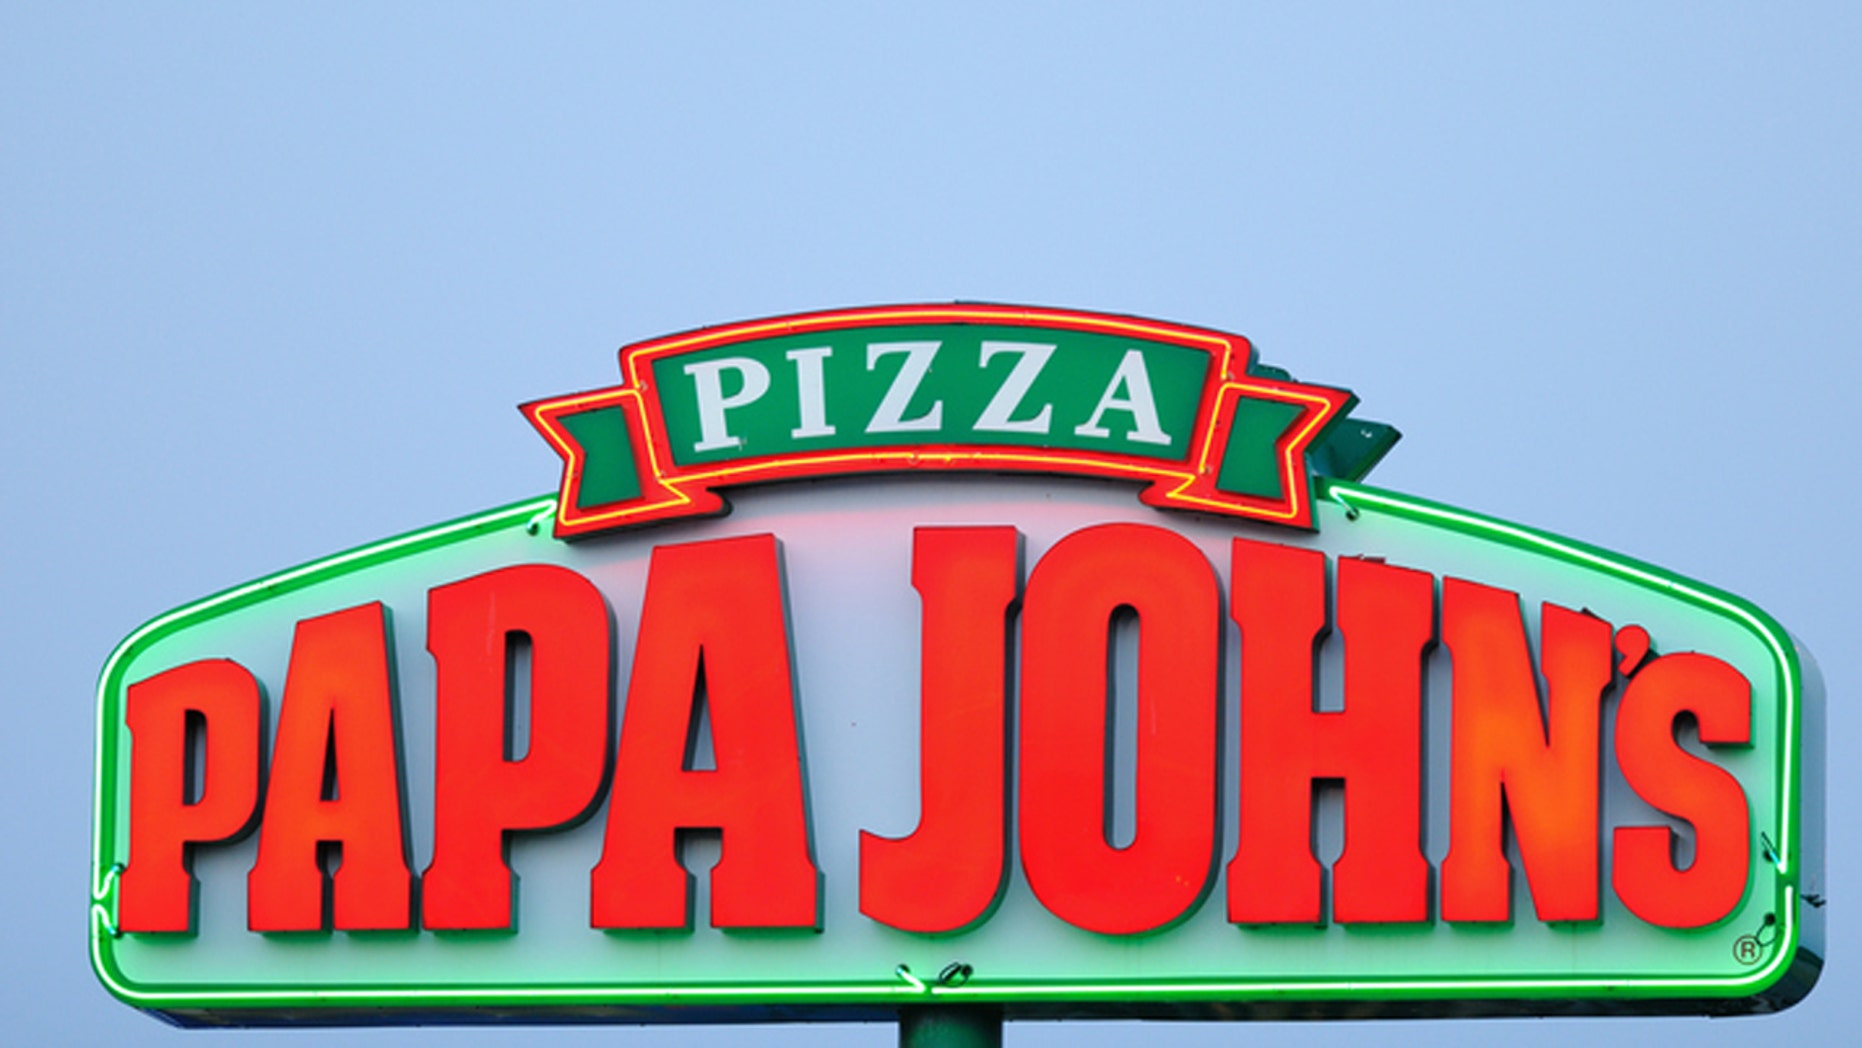 Huntsville, Alabama, USA - June 14, 2011: Close up of illuminated neon Papa Johns Pizza Sign at sunset with copy space above. Sign located on University Drive in Huntsville, Alabama.  Horizontal composition.